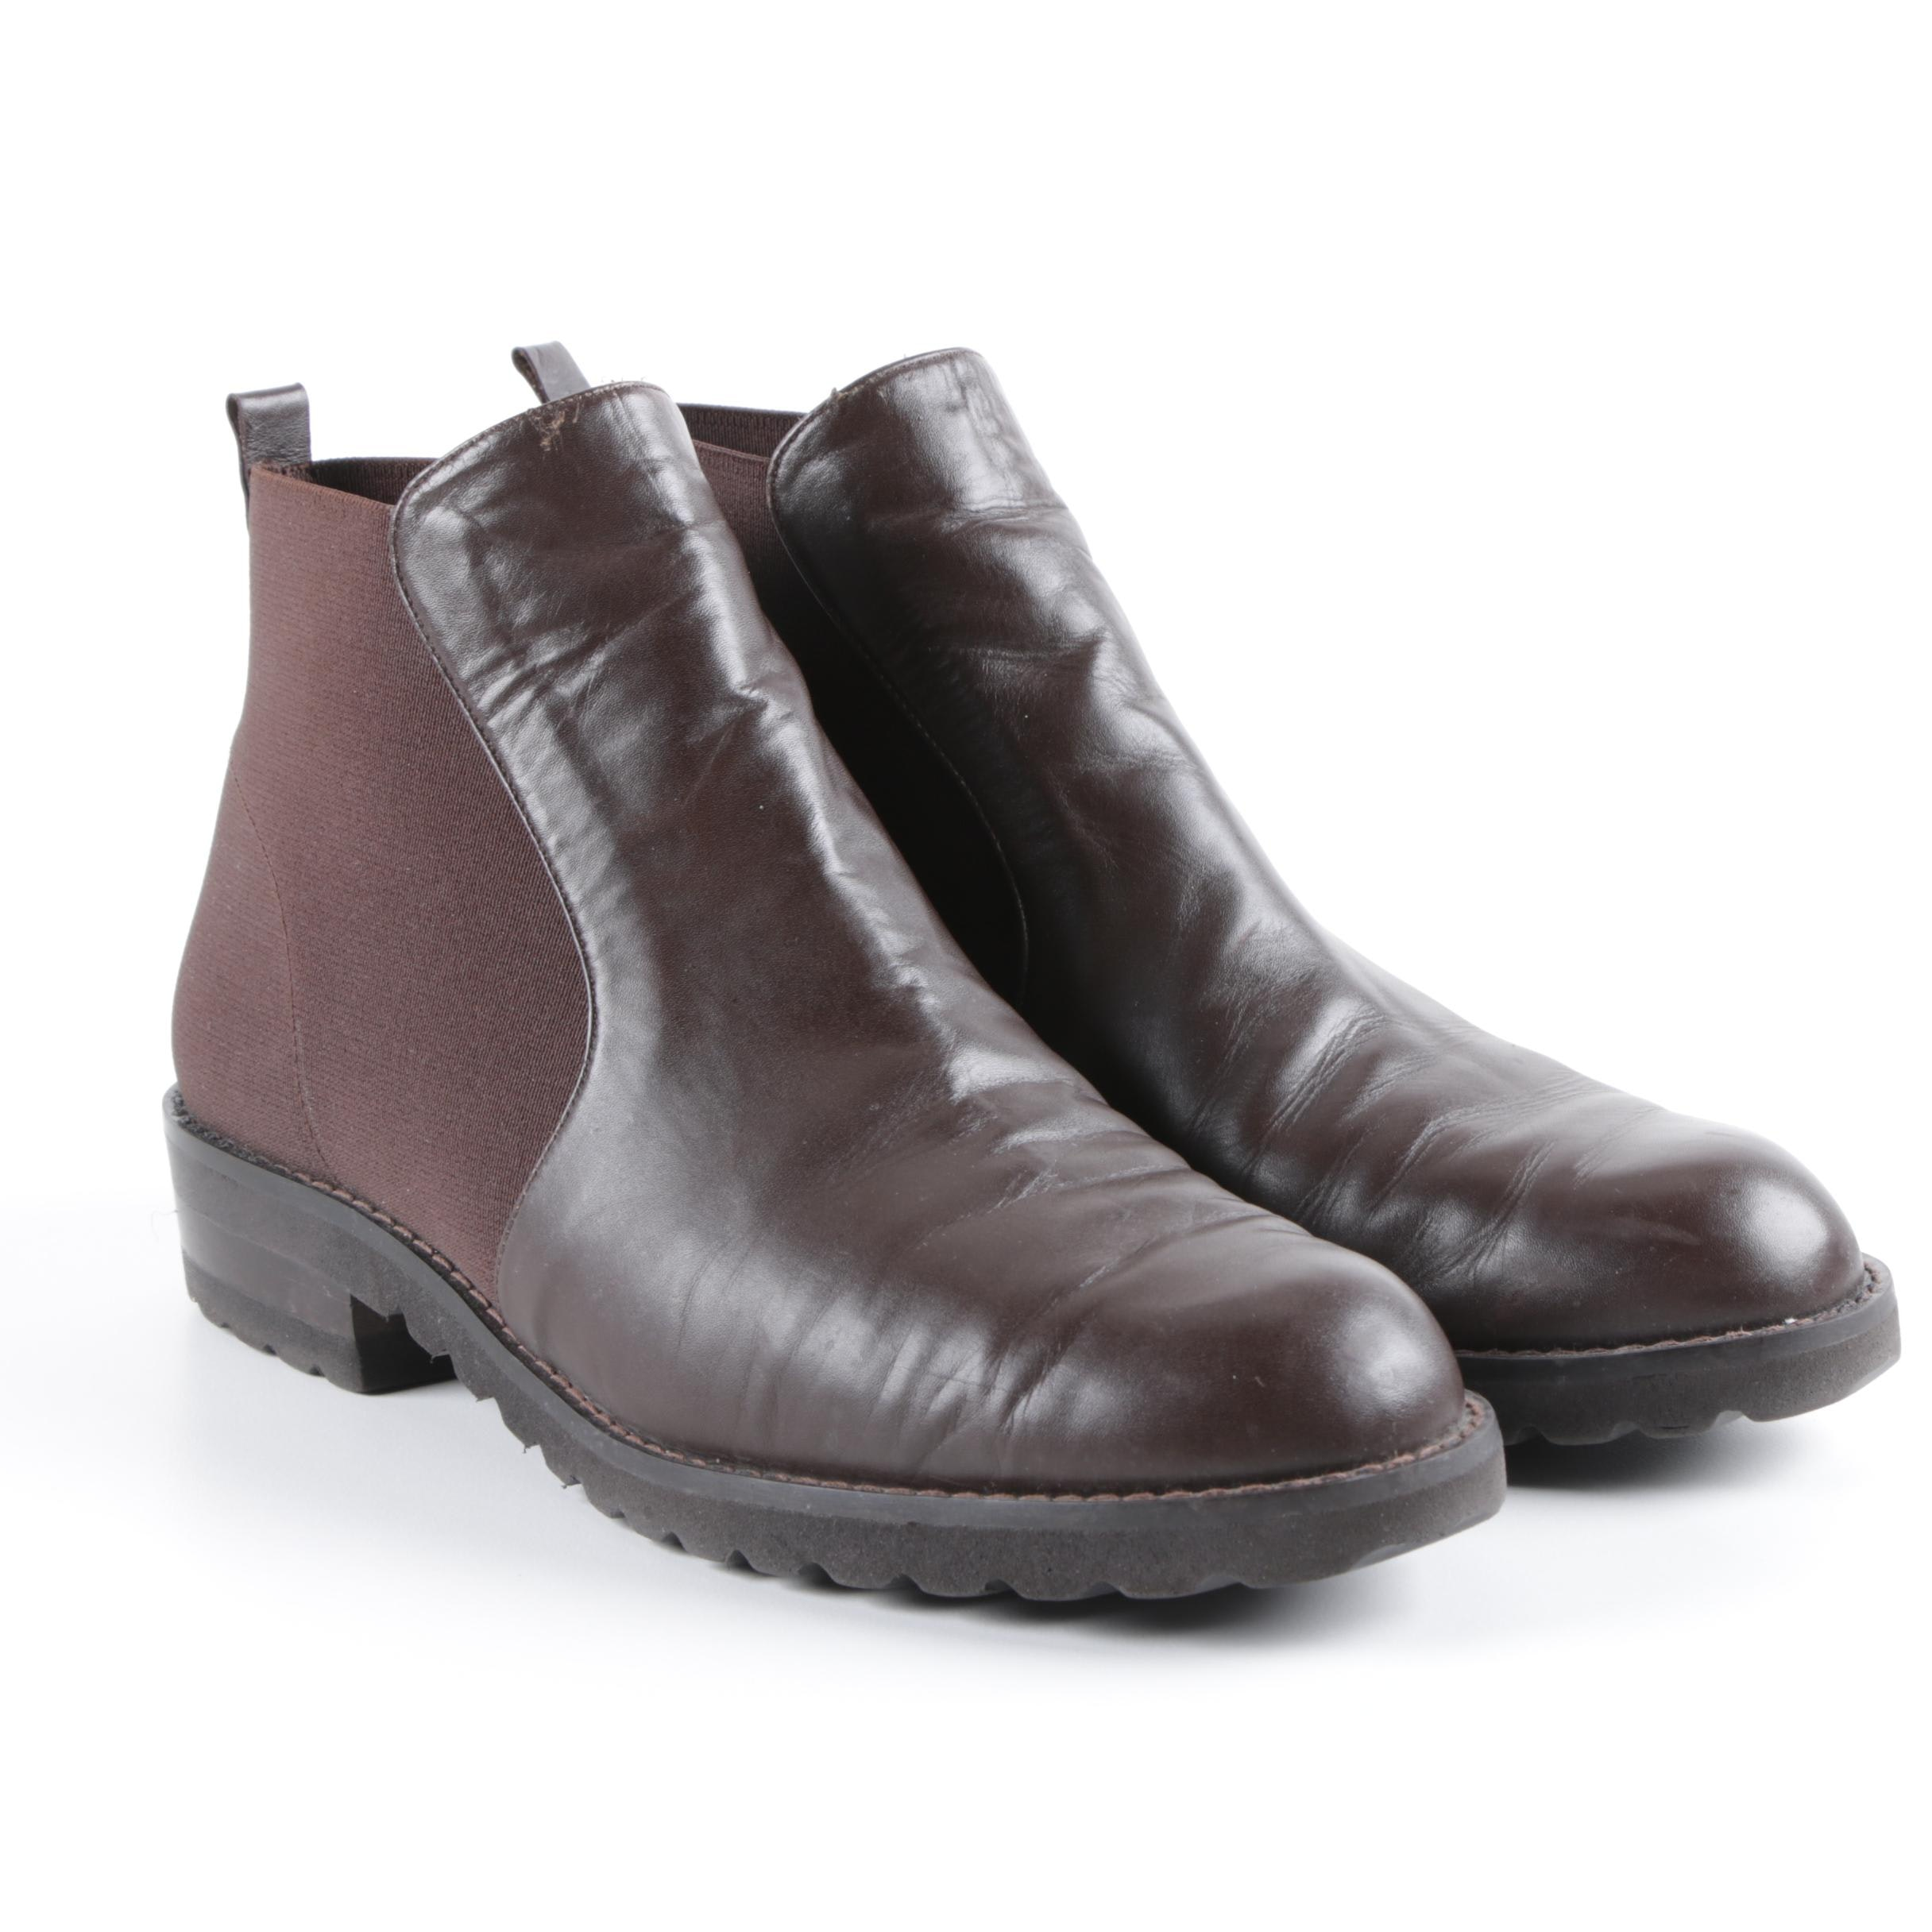 Women's Paul Mayer Brown Leather and Nylon Booties